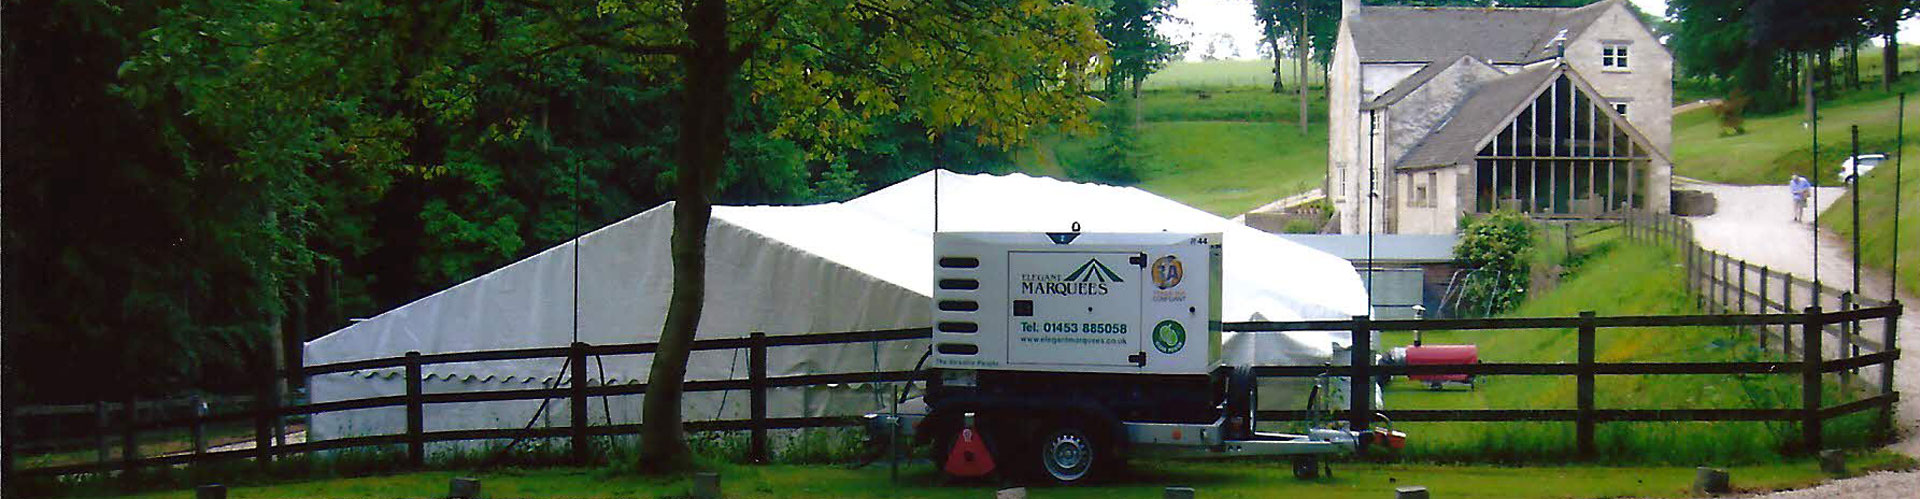 gloucestershire generator hire from elegant marquees nailsworth